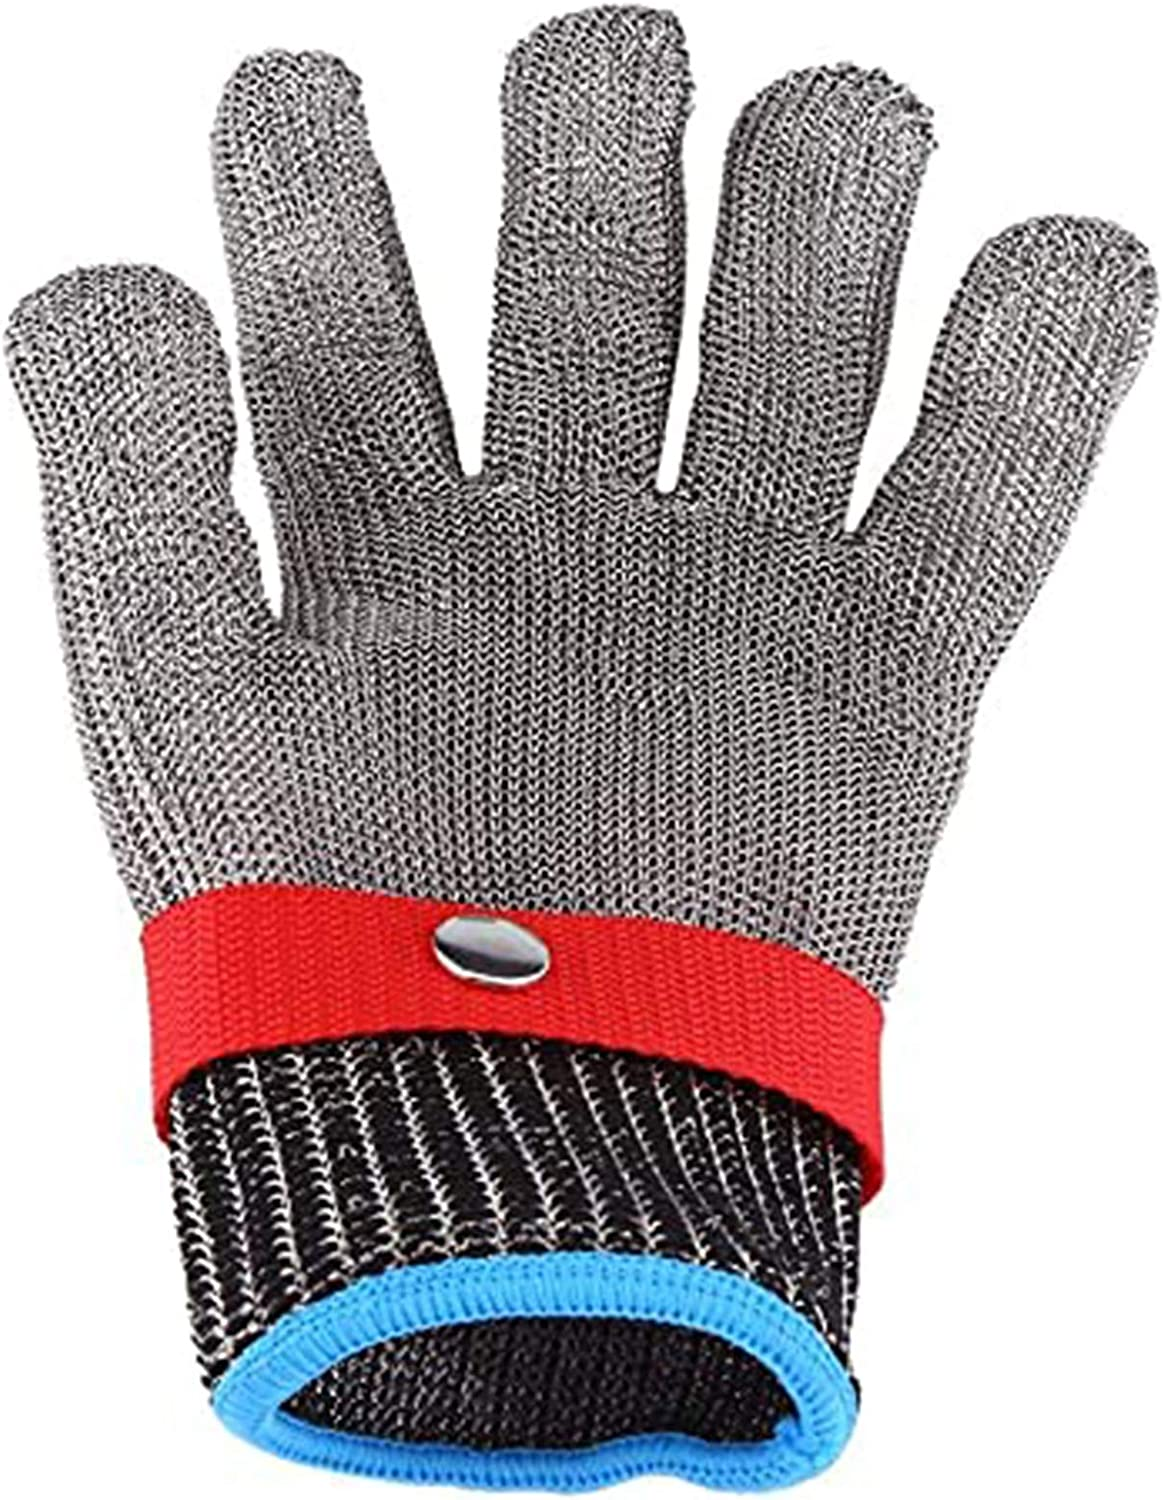 Steel Wire Cheap mail order specialty store Gloves Metal Fisherman Import Butcher Cut-Resistant